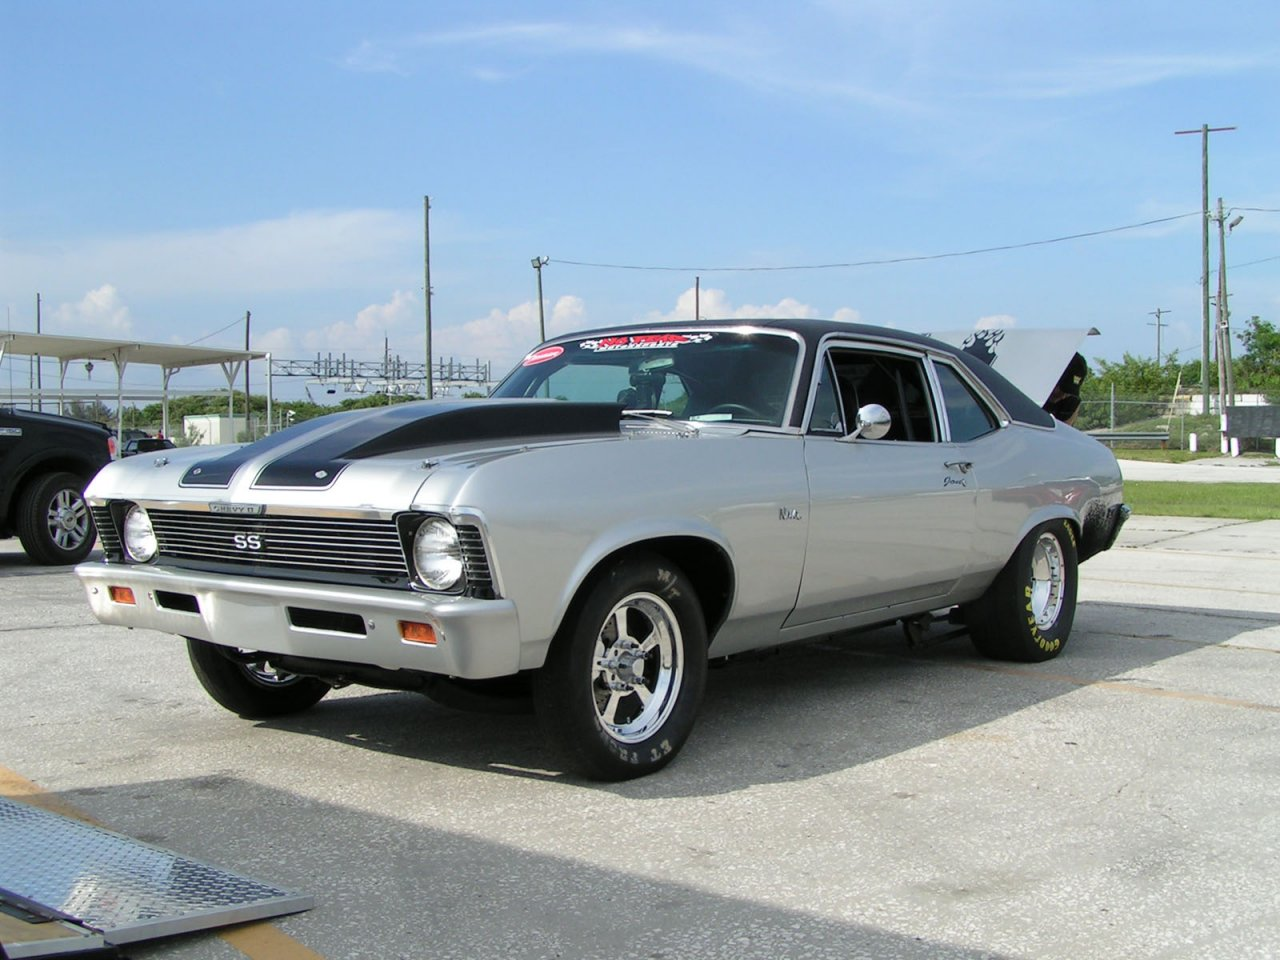 Image of Chevrolet Nova SS 396